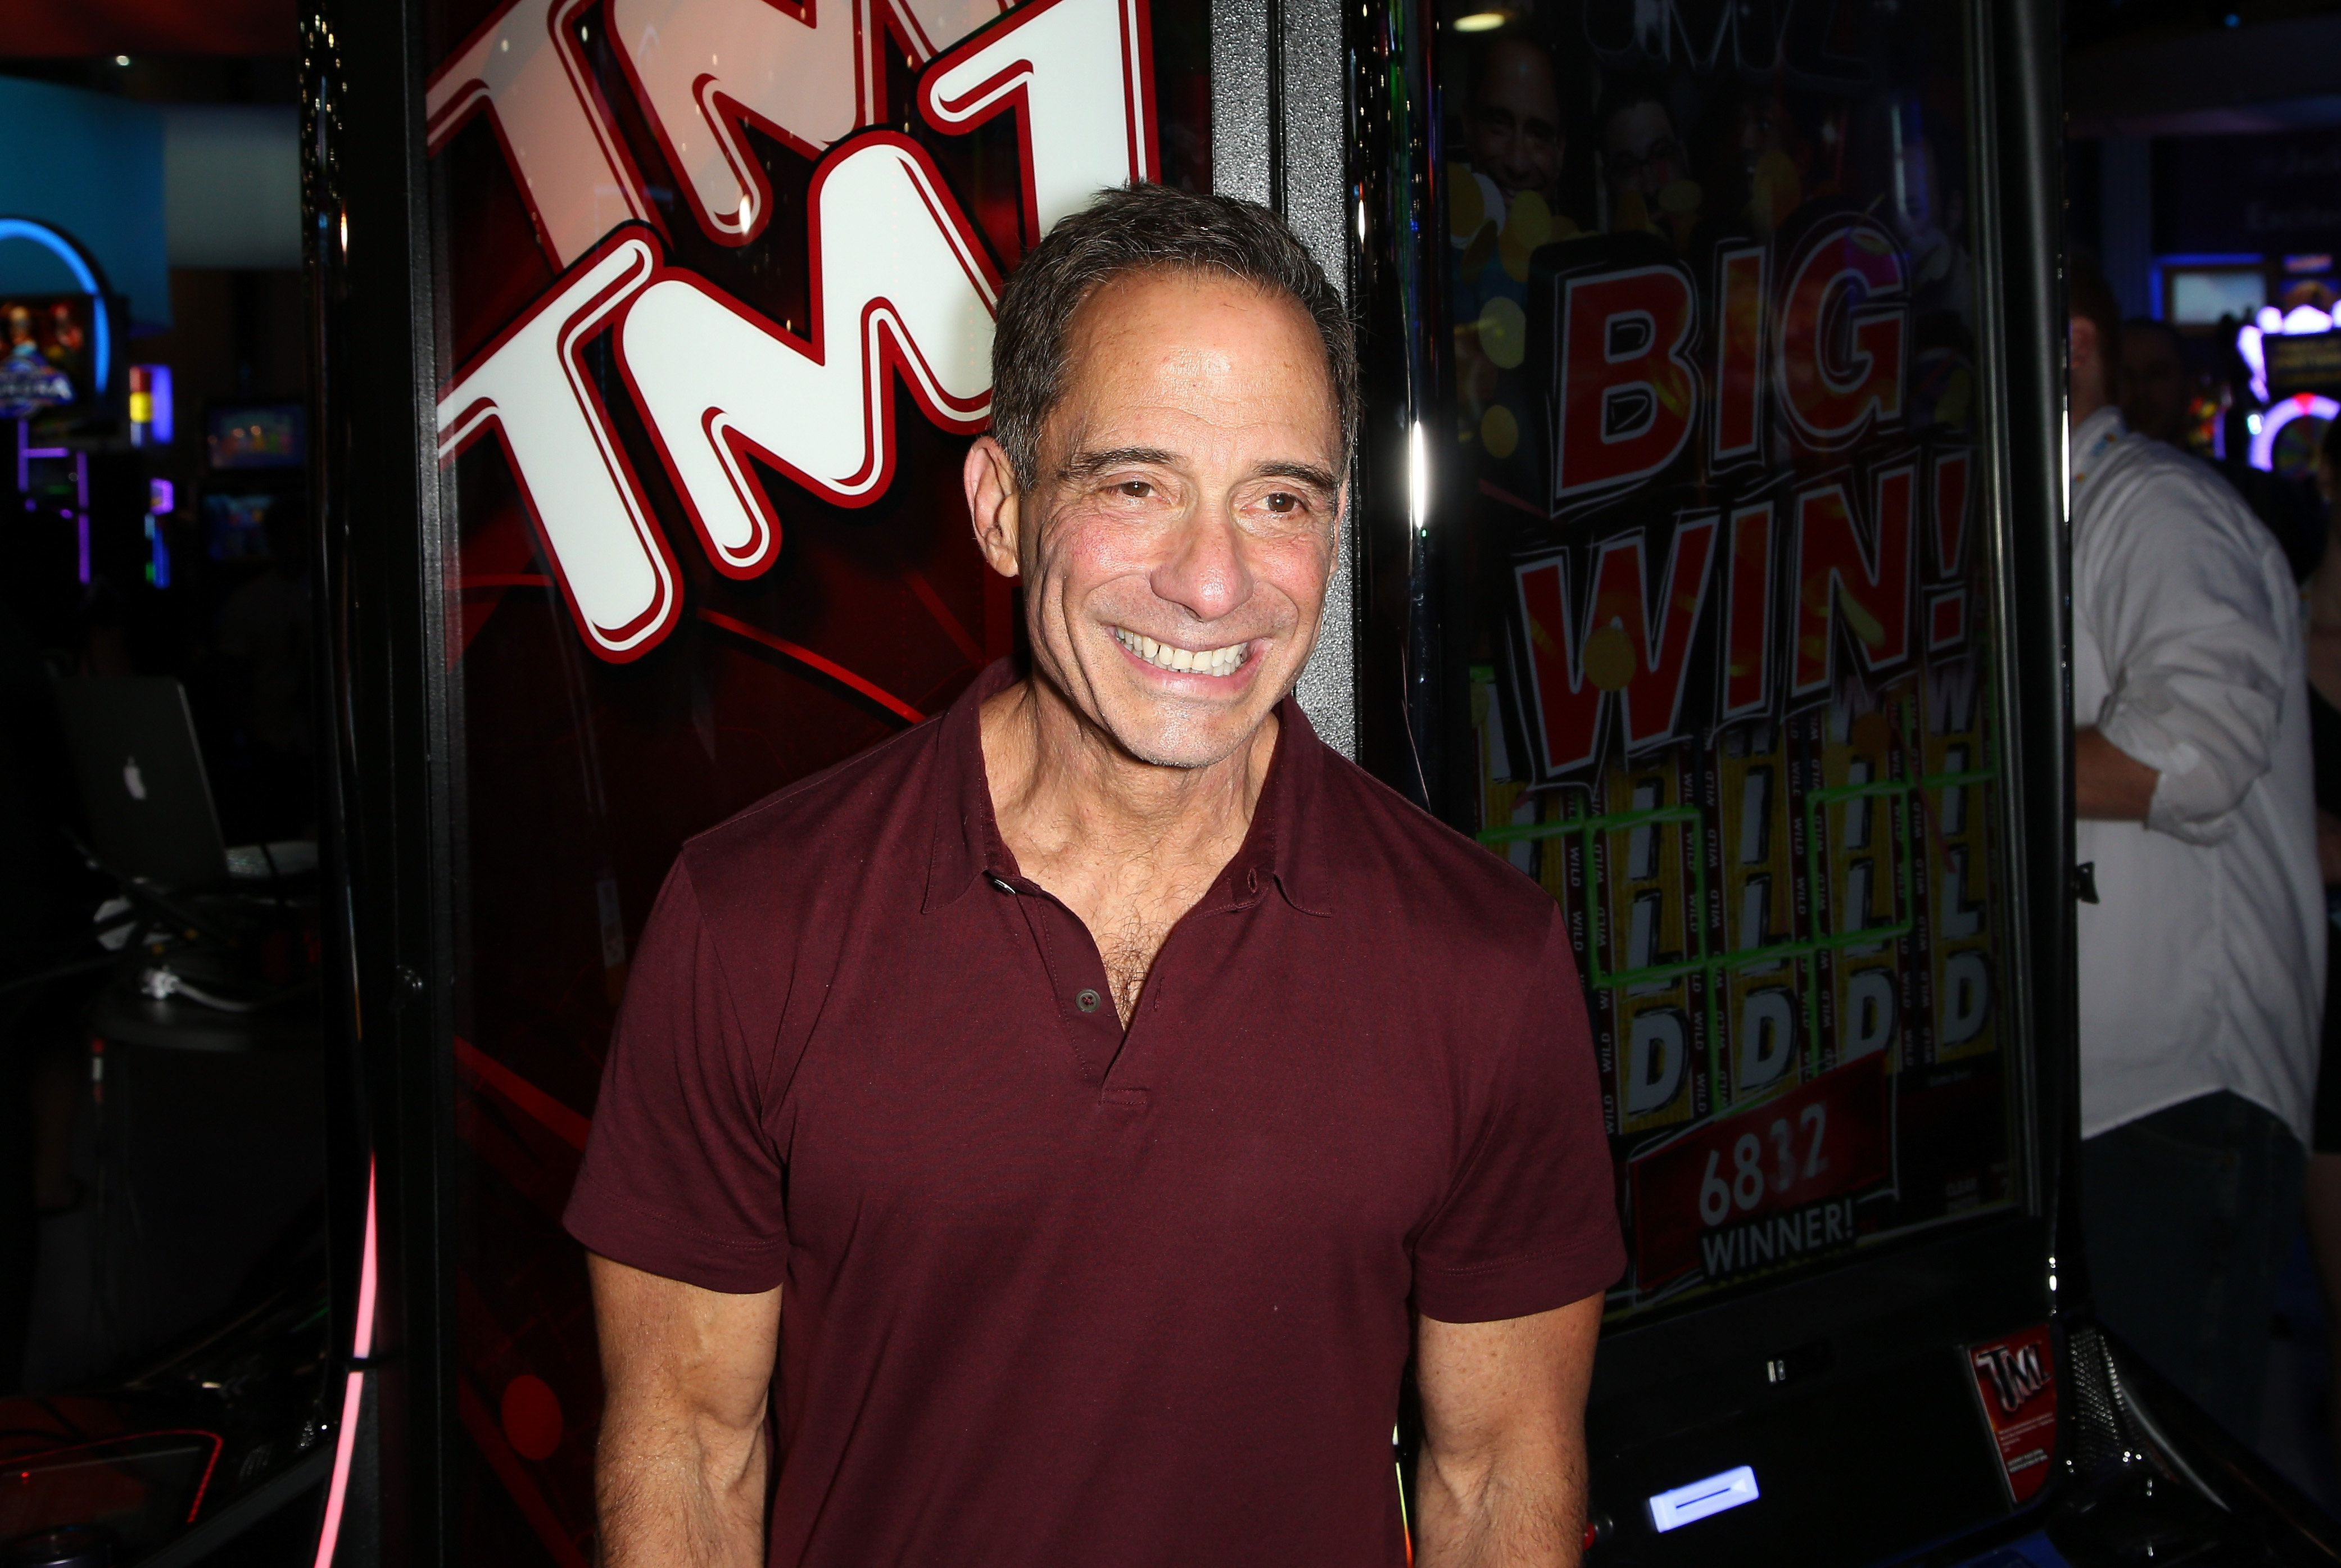 In a new essay, TMZ executive producer Harvey Levin revealed shame caused him to keep his sexuality secret for many years.